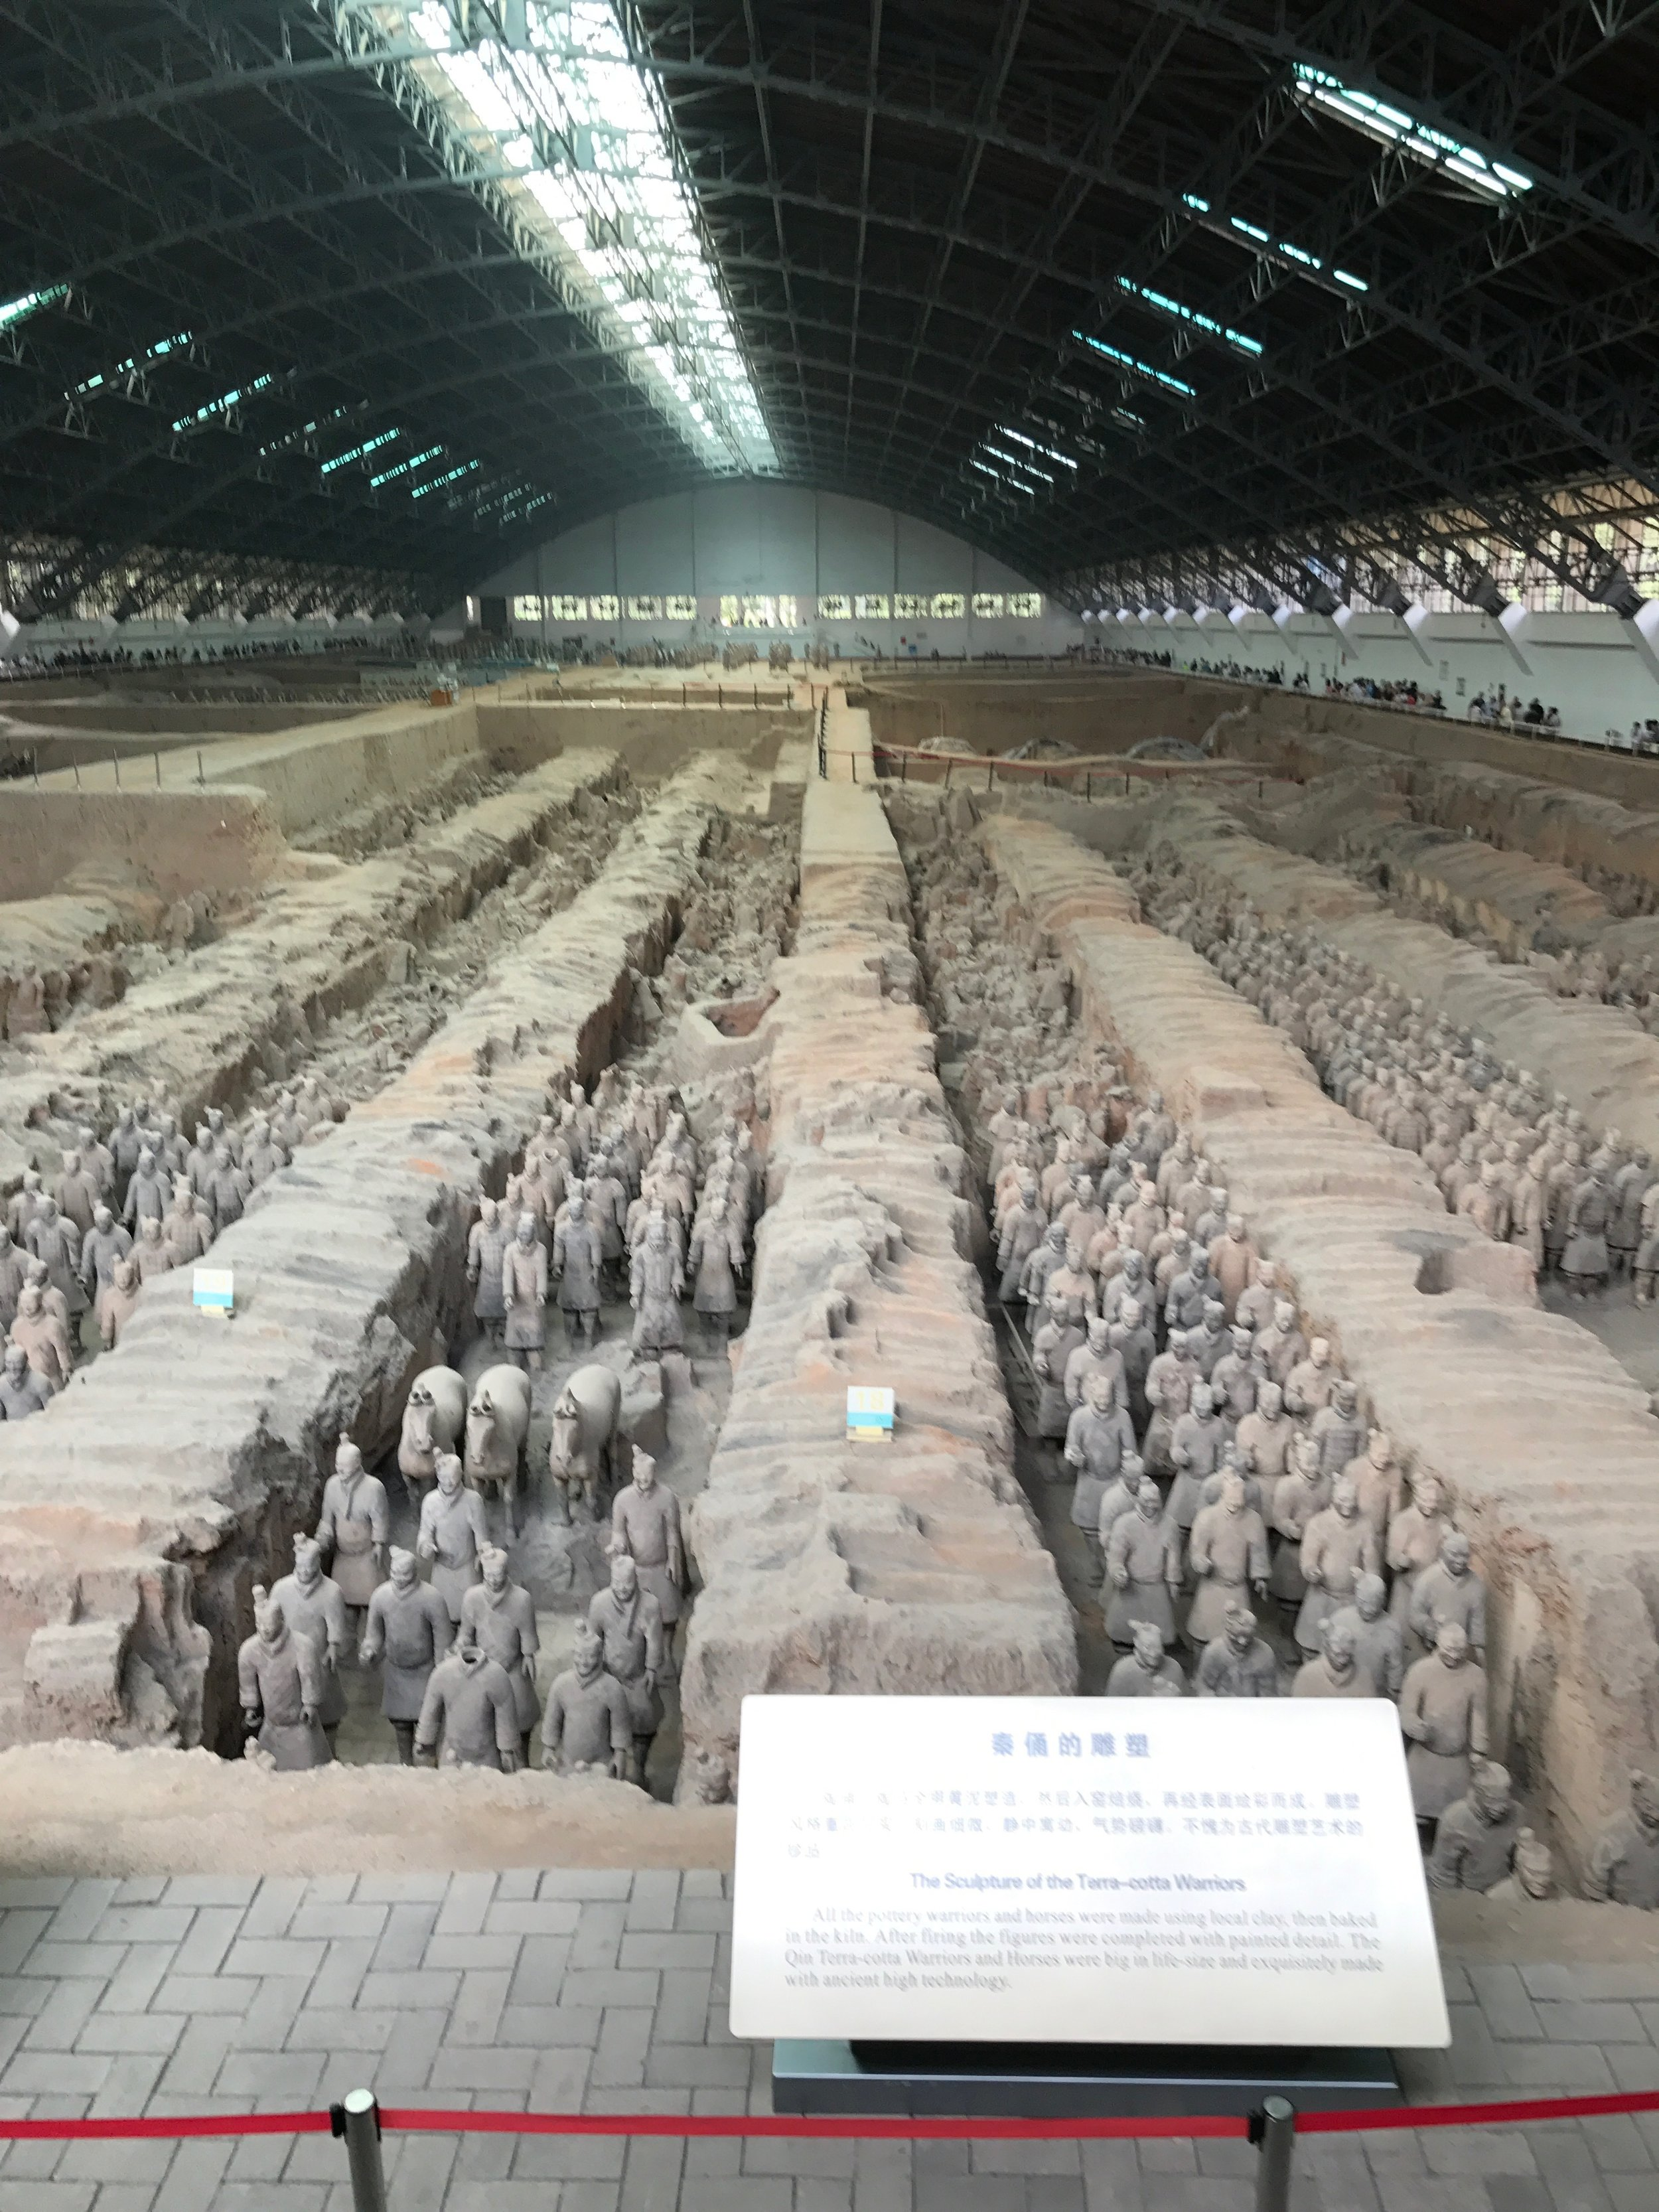 Xian  – The museum of the Terracotta Army. Discovered in 1974 when a local farmer was digging a well, the terracotta army, buried in 210 BC with the first emperor of the Qin dynasty, astounded the world with their artistry and sheer numbers. The thousands of life-size figures have individually unique faces and hair and armor styles appropriate to their rank. The terracotta army was constructed to guard the tomb of Emperor Qin Shihuang, the founding emperor of the Qin Dynasty, and the emperor who united China. It is truly mind boggling to think that this amazing site was built so long ago by such primitive tools and only to guard a tomb in 1987. This archeological treasure was added to UNESCO's World Cultural Heritage List. You'll get to meet the farmer that discovered the site.